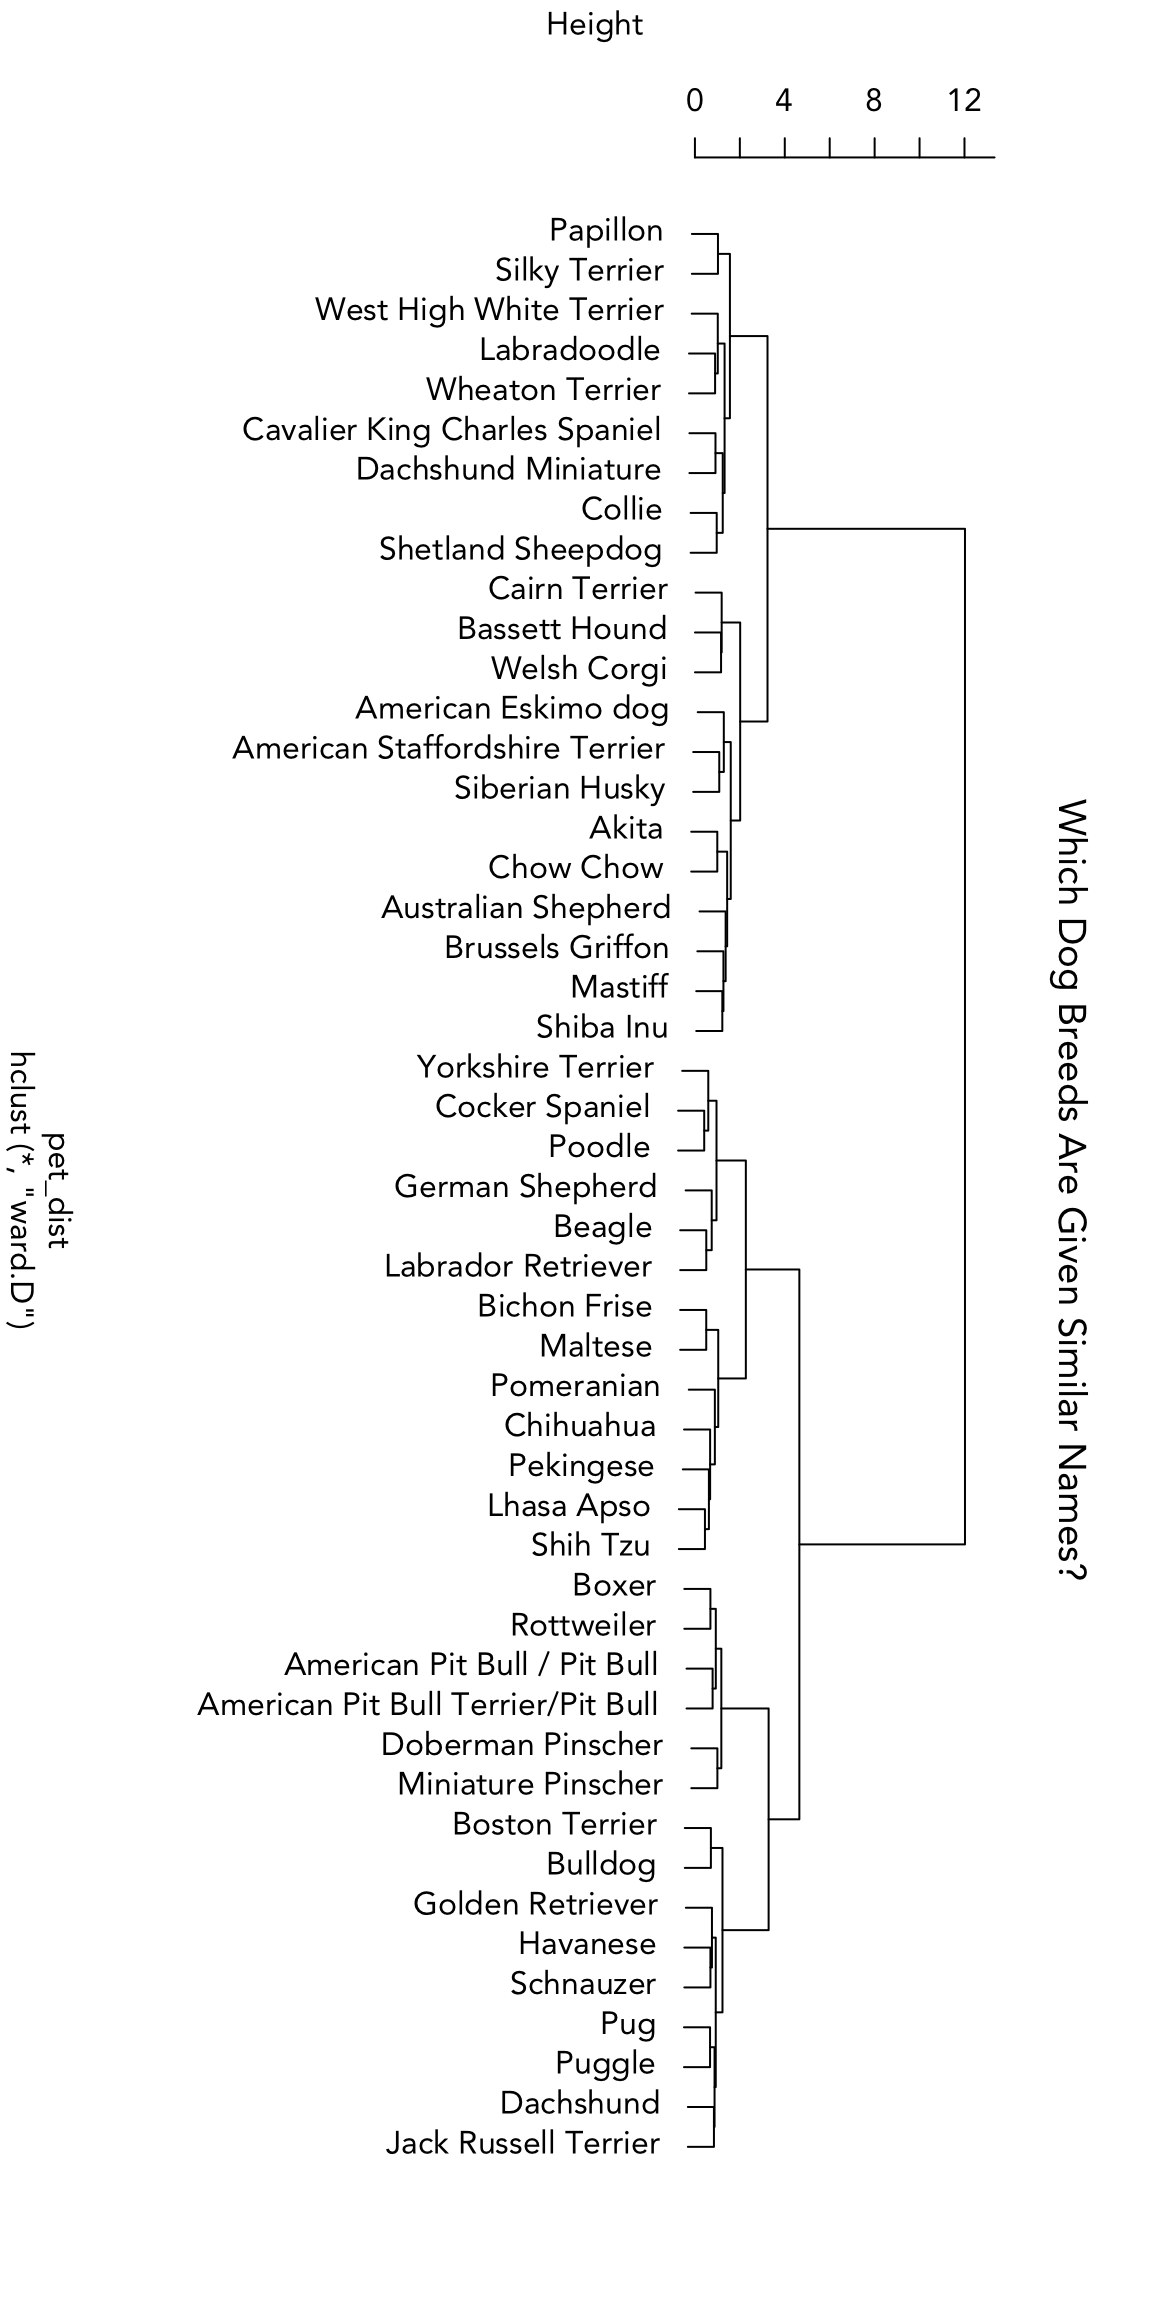 Which Dog Breeds Have Similar Names?